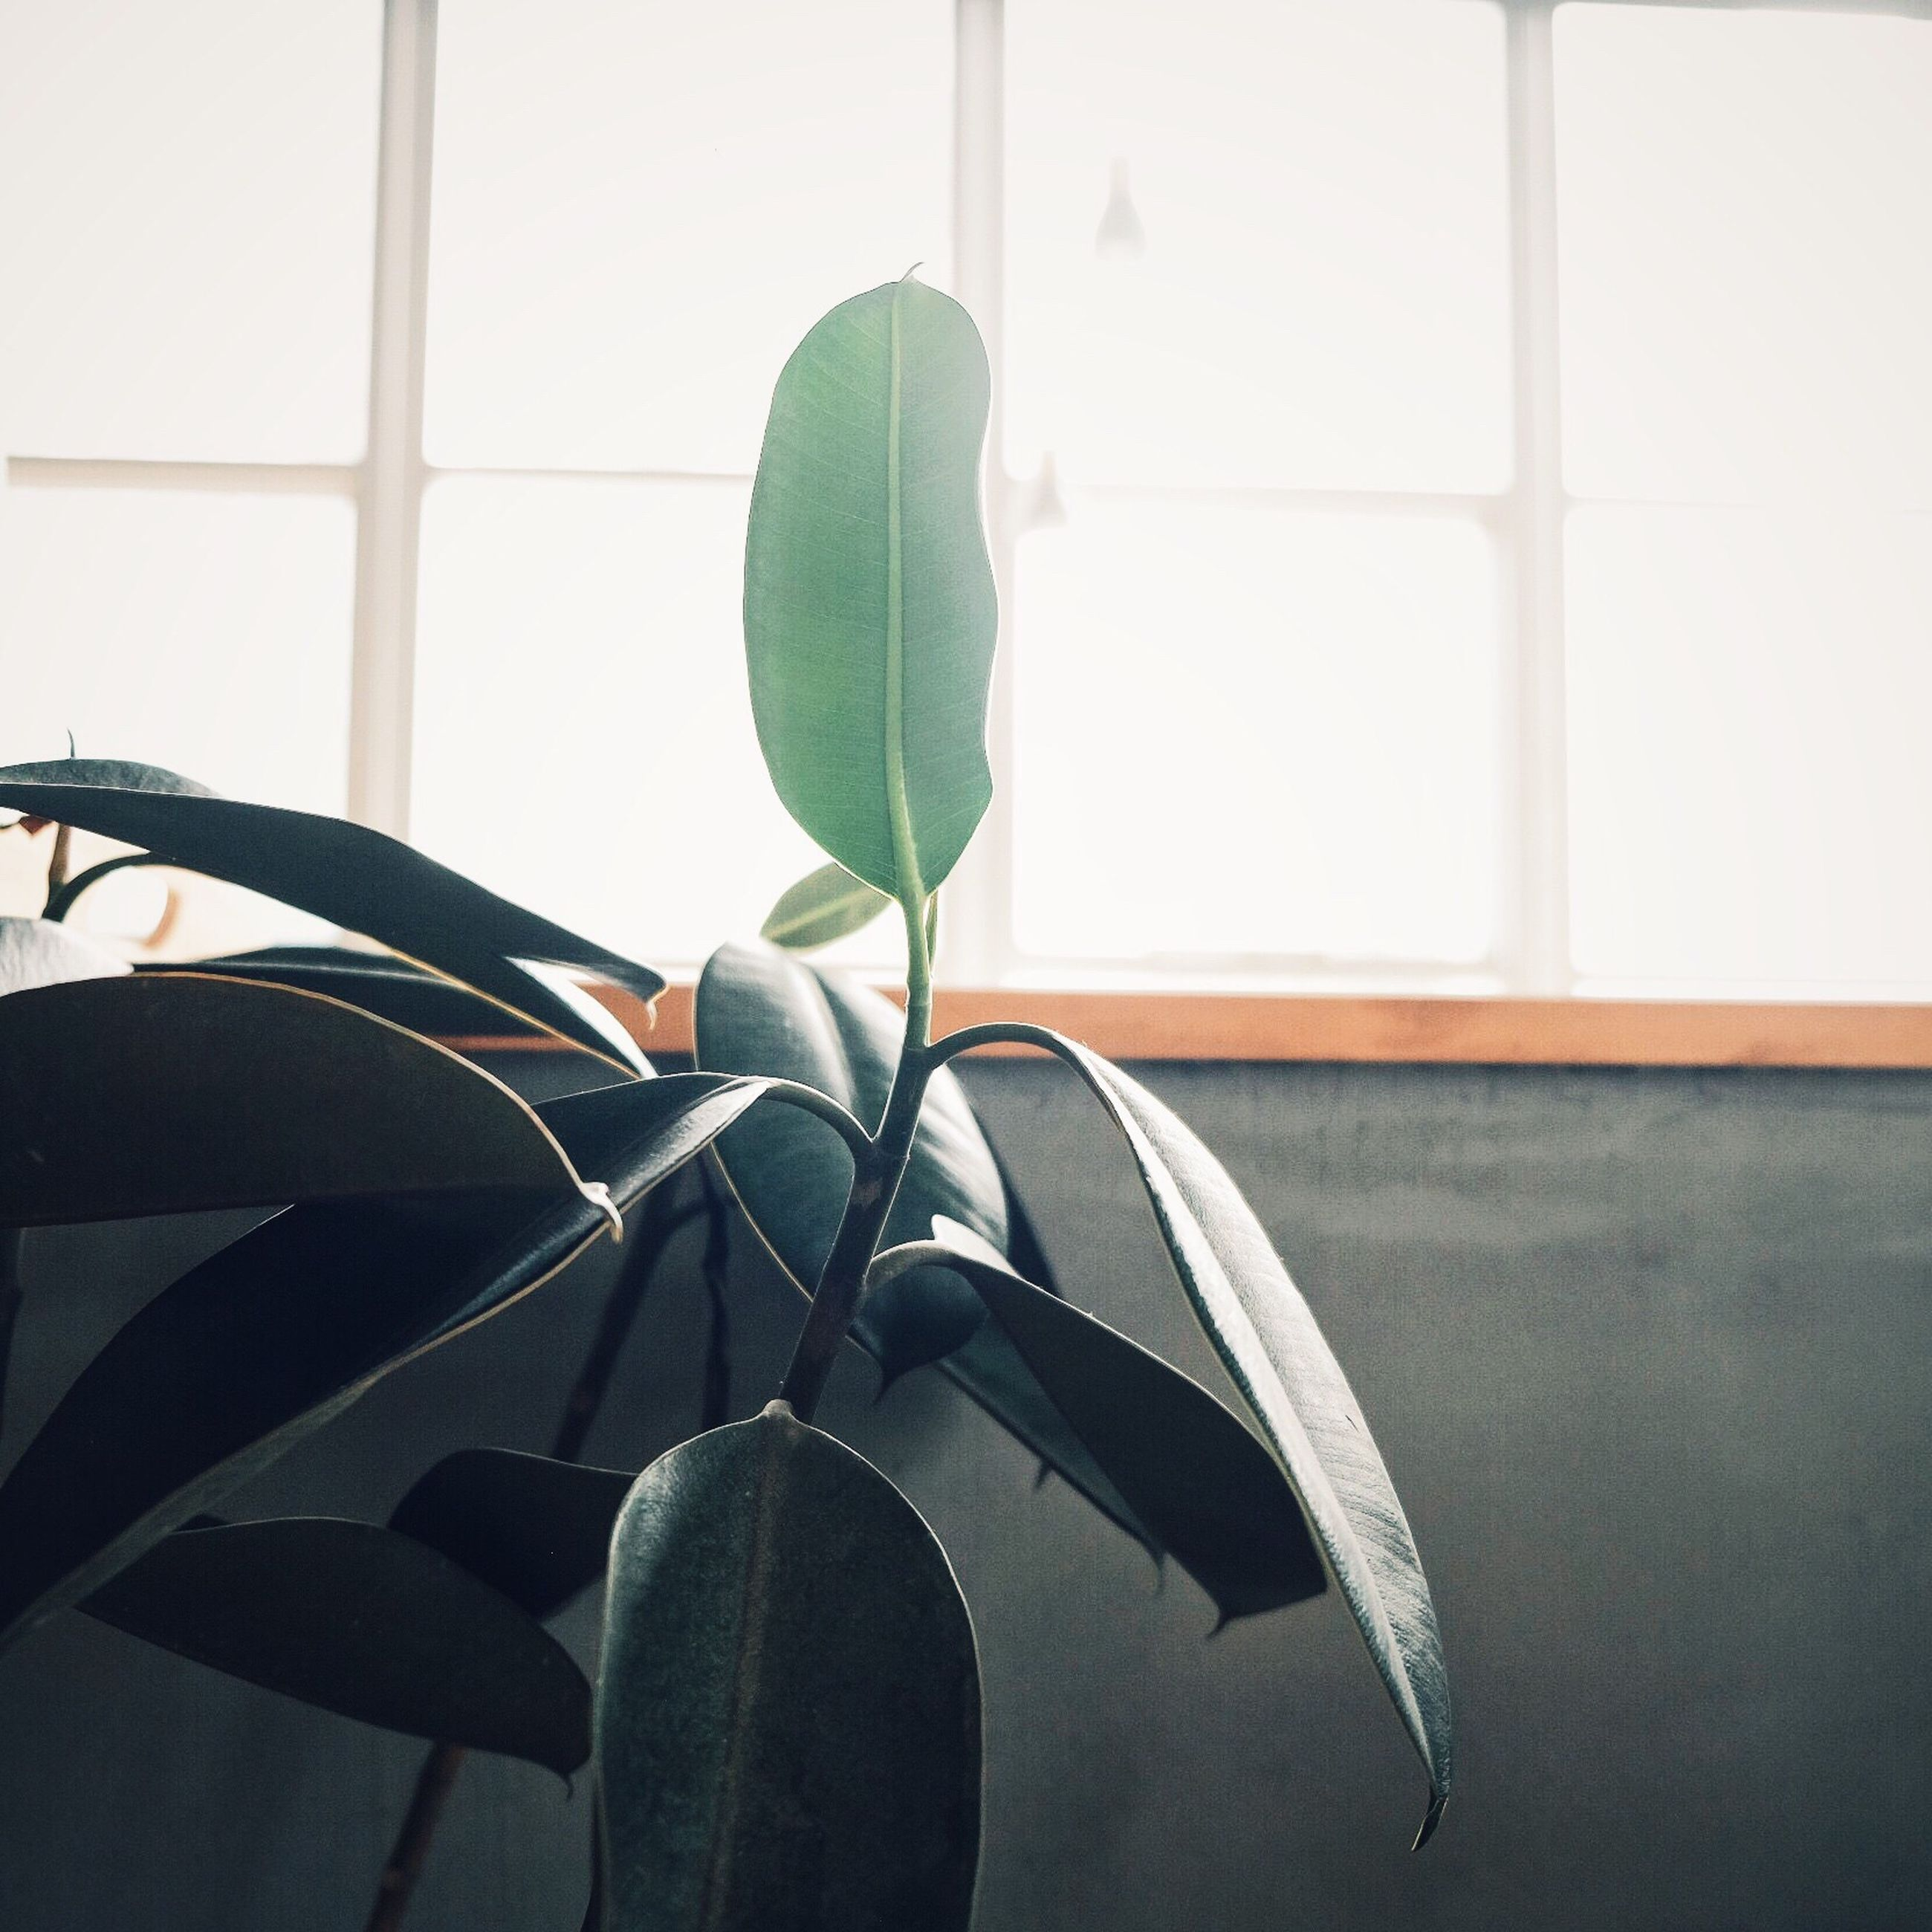 plant, close-up, growth, leaf, potted plant, indoors, green color, window, day, cactus, metal, no people, wall - building feature, built structure, nature, sunlight, focus on foreground, spiked, home interior, sharp